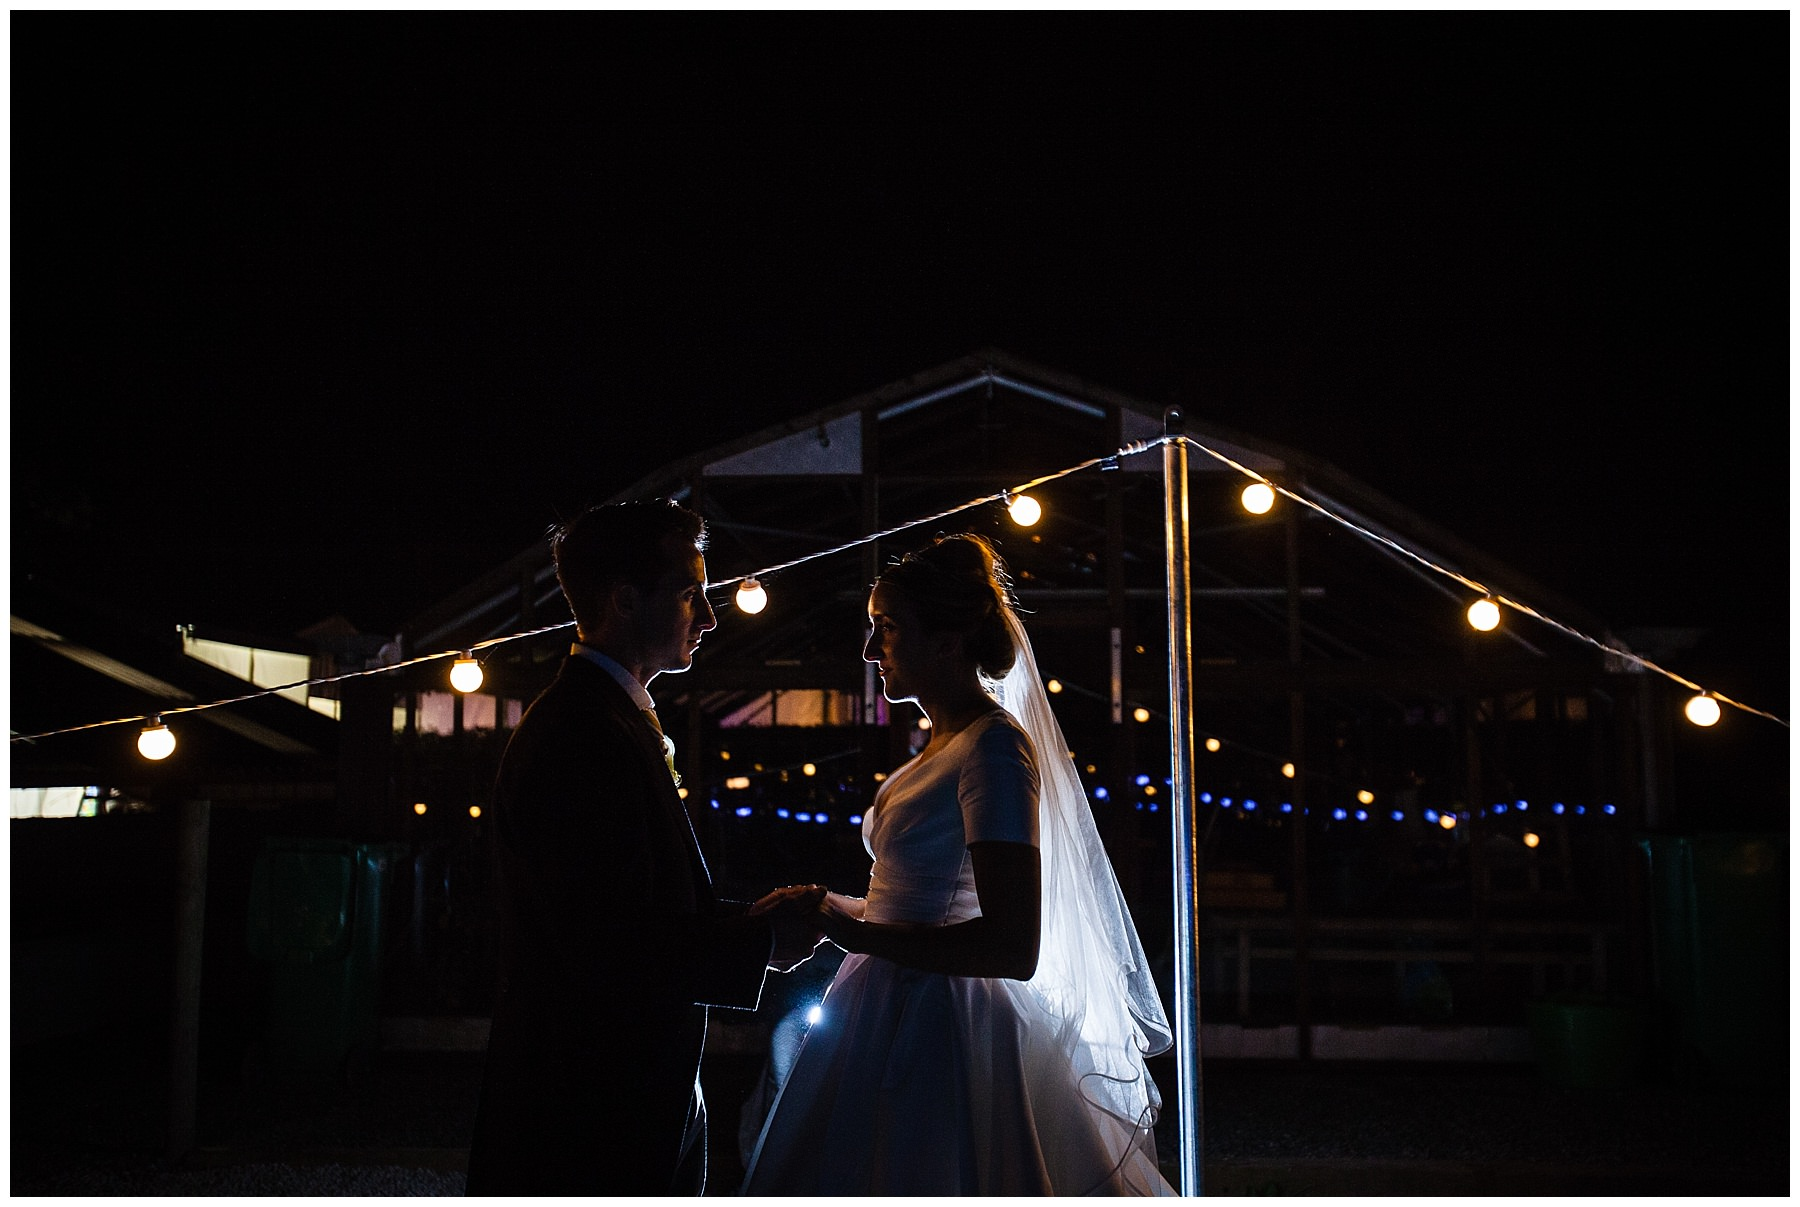 final shot of bride and groom in the evening with twinkly lighting